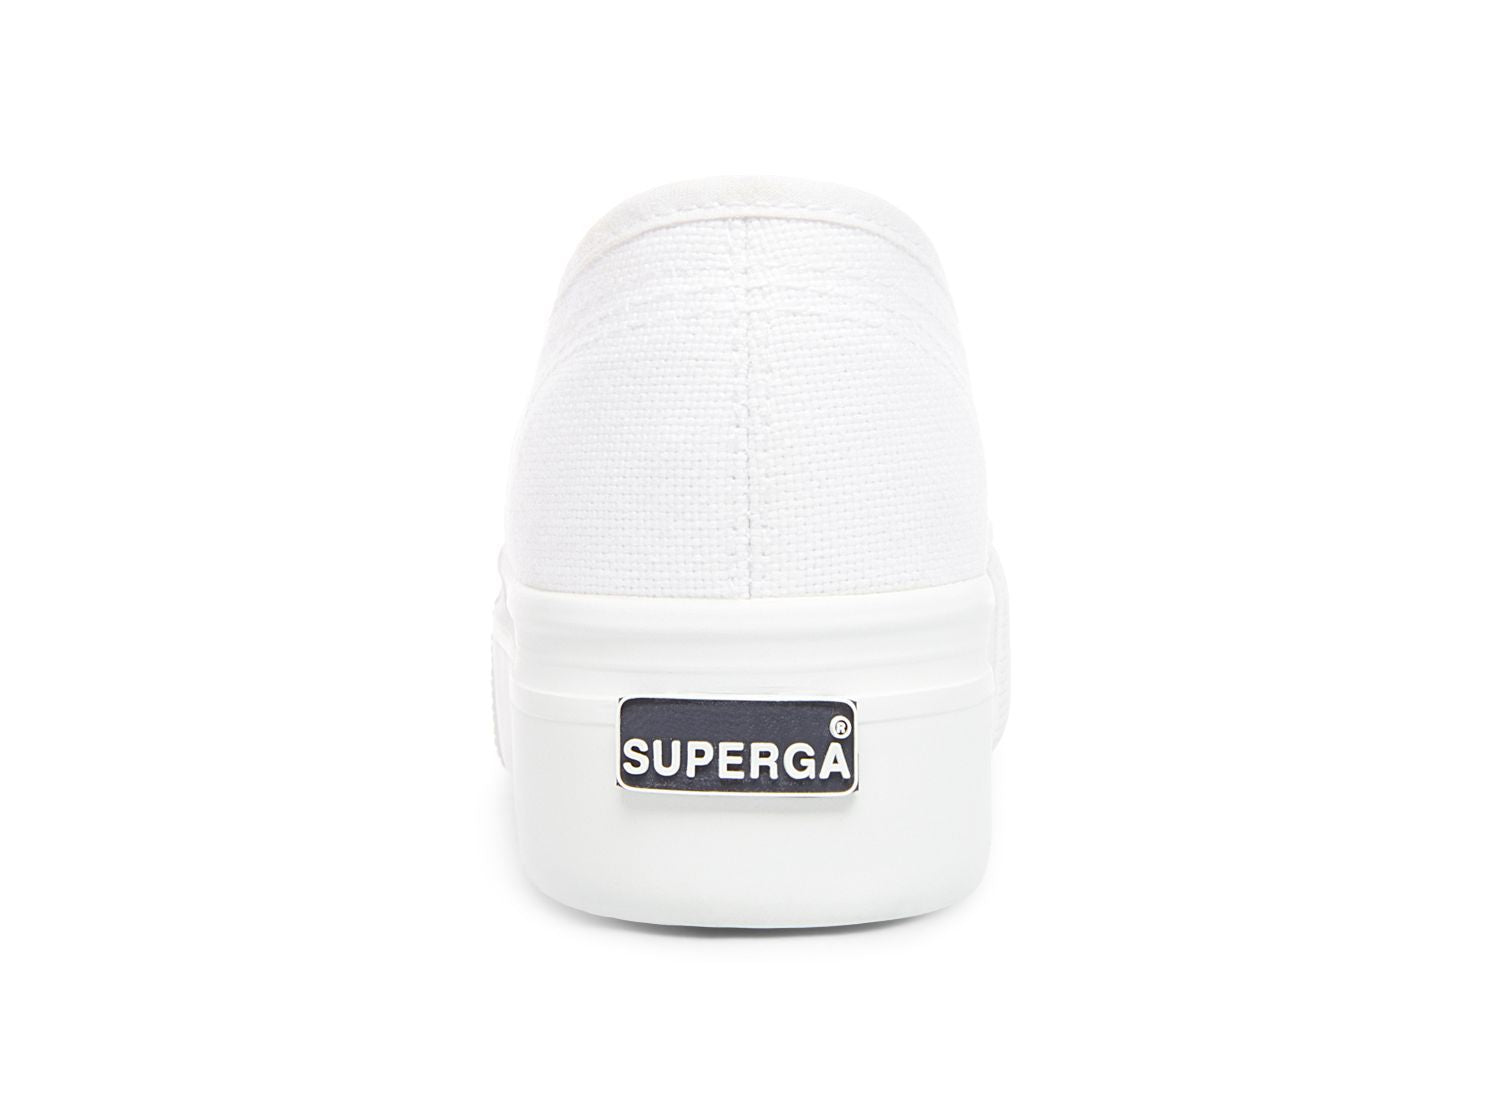 SUPERGA Acotw Shoe